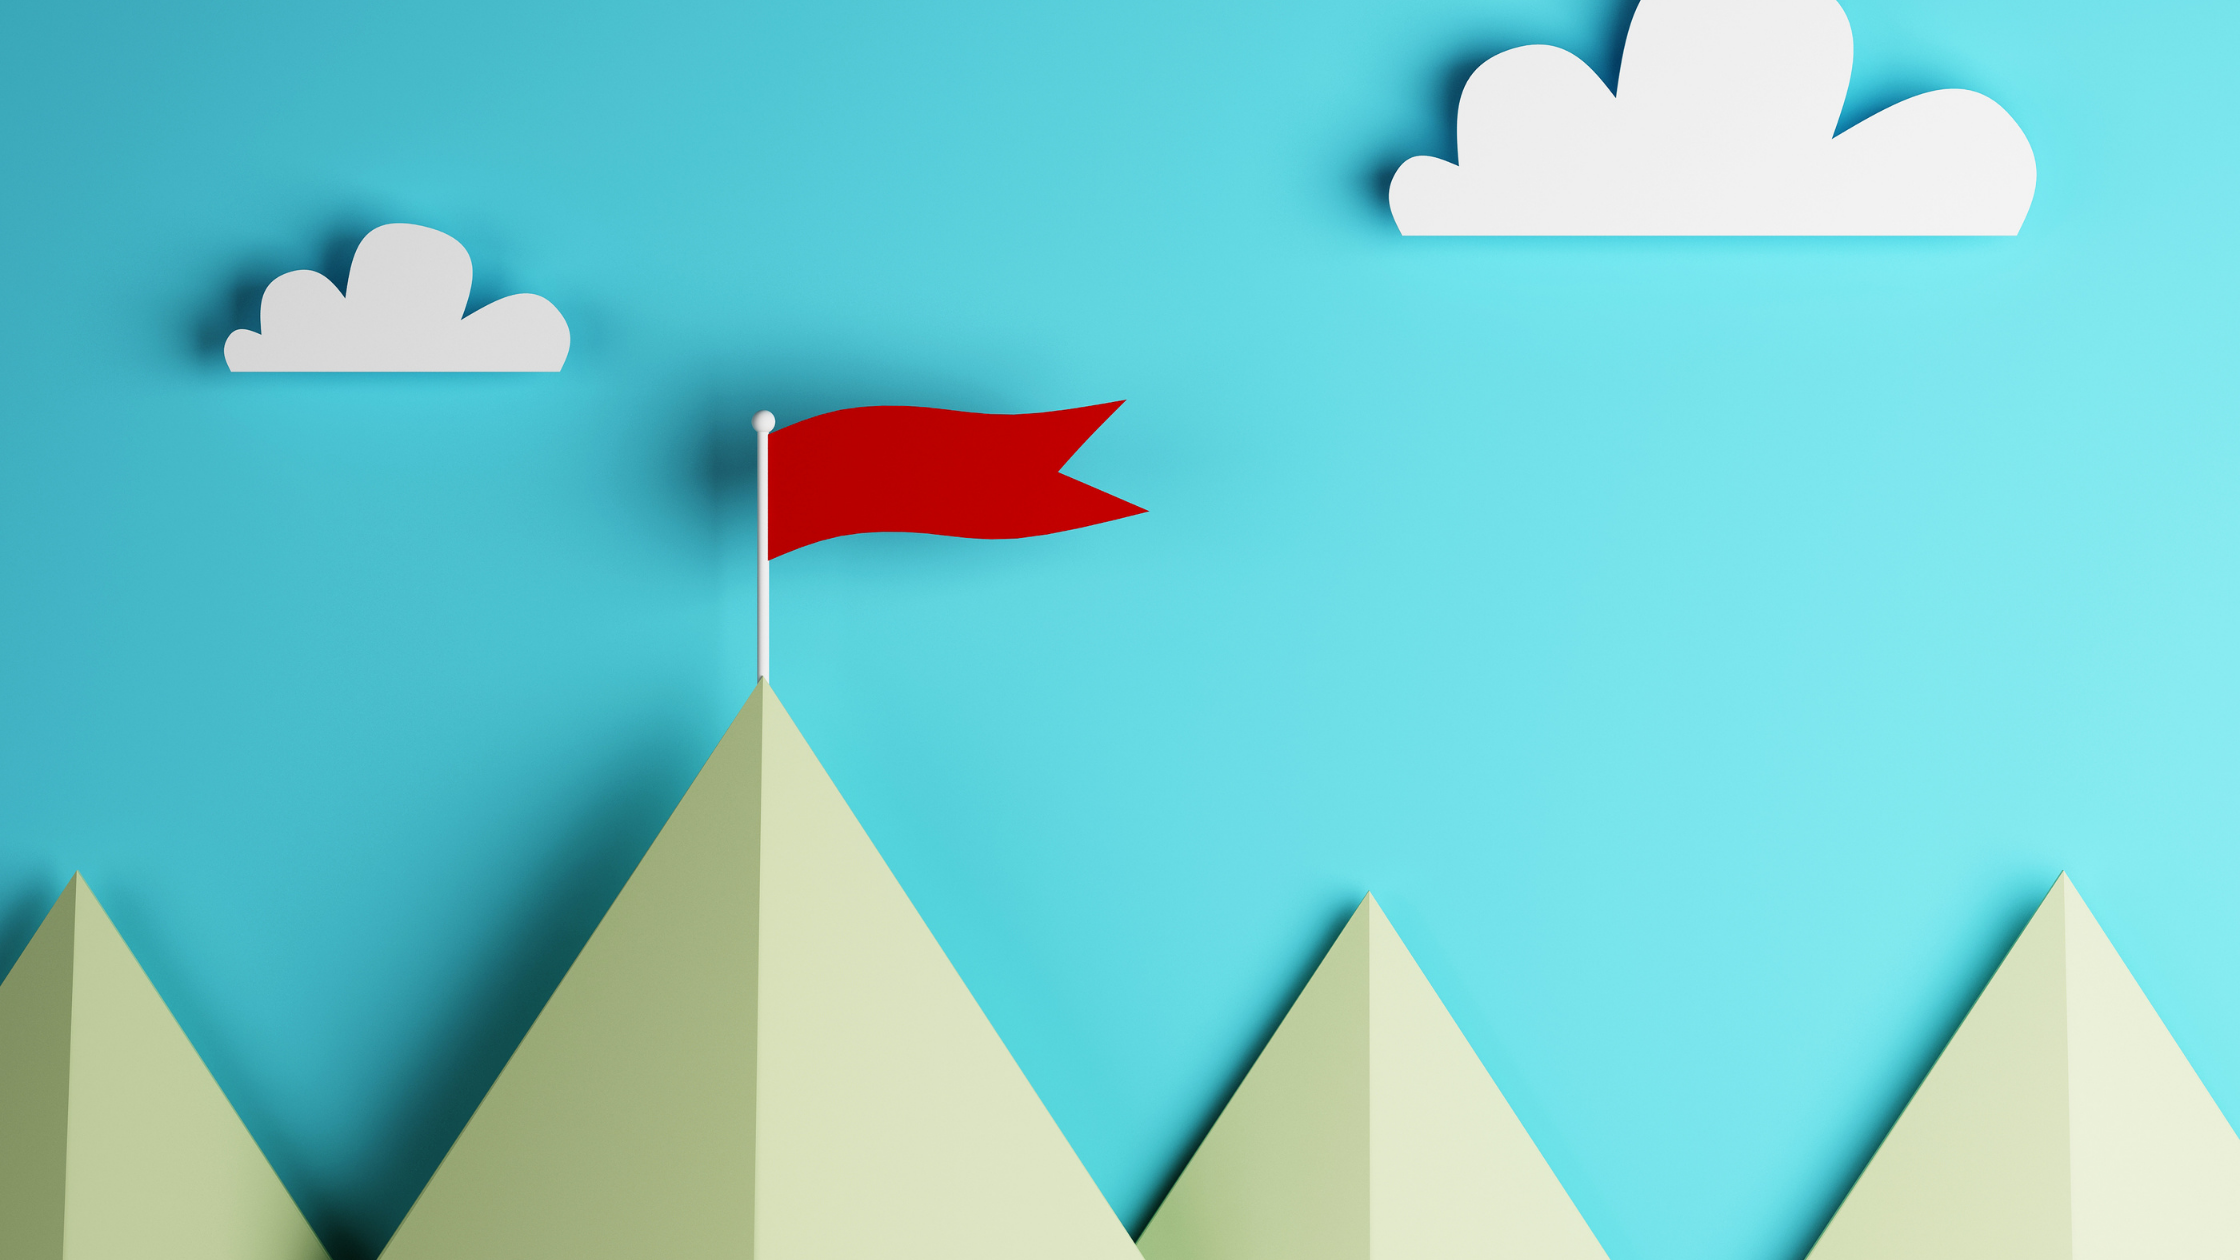 craft paper cutout of mountains, sky, and a red flag